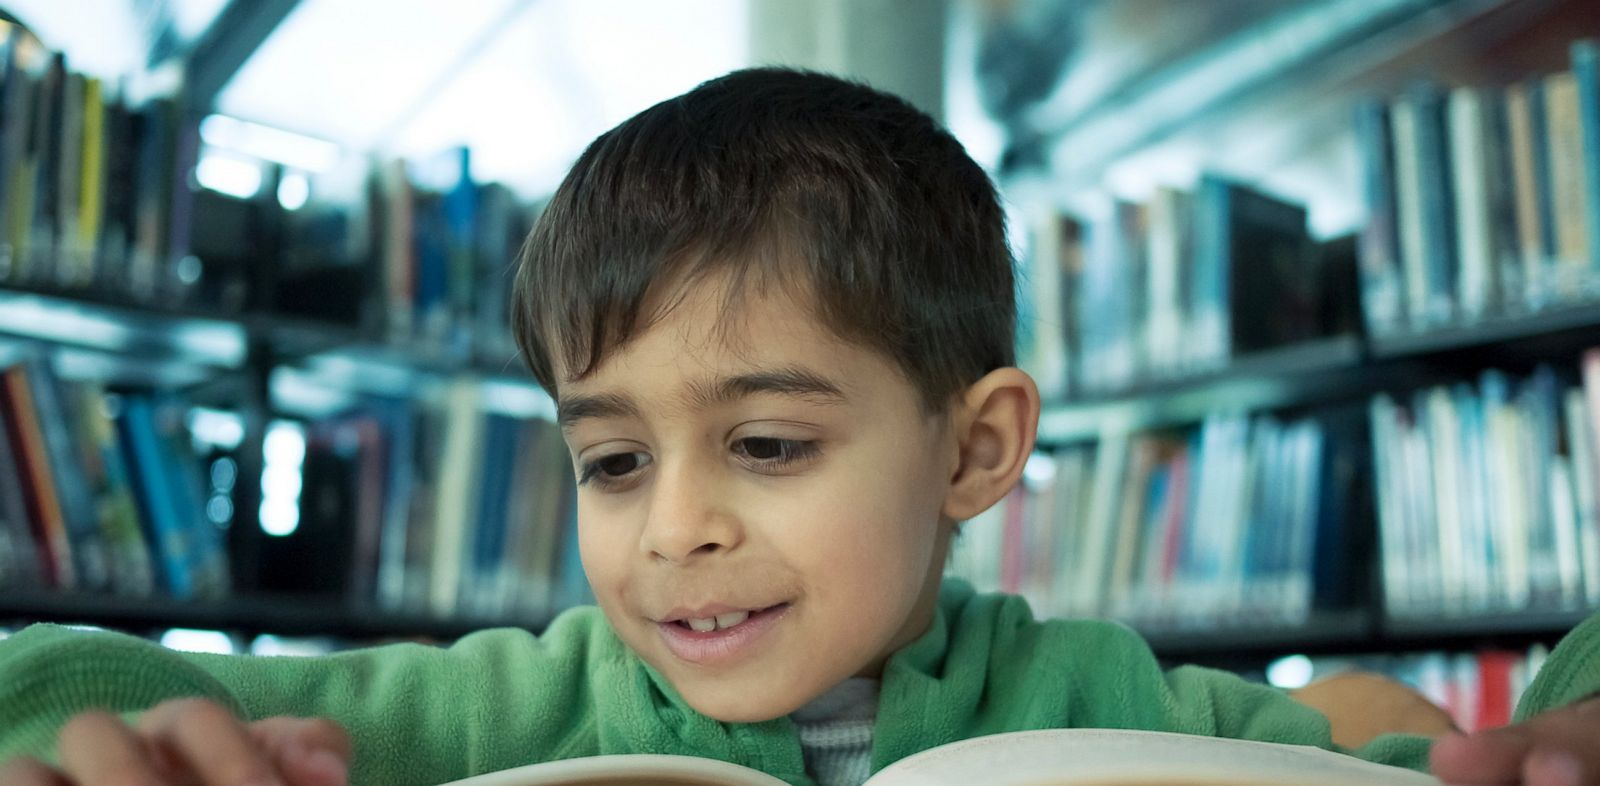 Boy reads book in public library